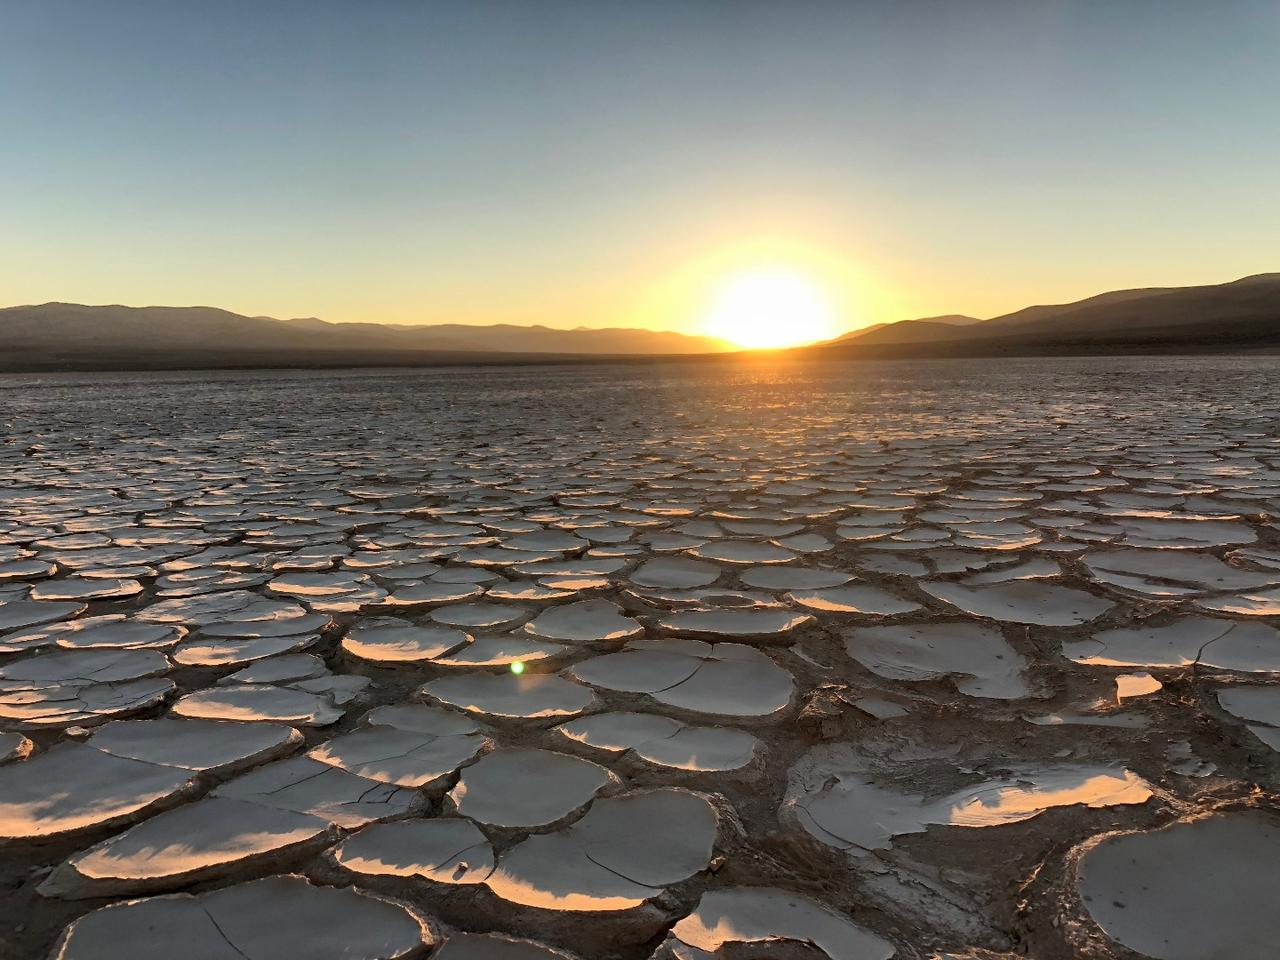 The Atacama Desert is so dry that not even microbes can exist under normal conditions